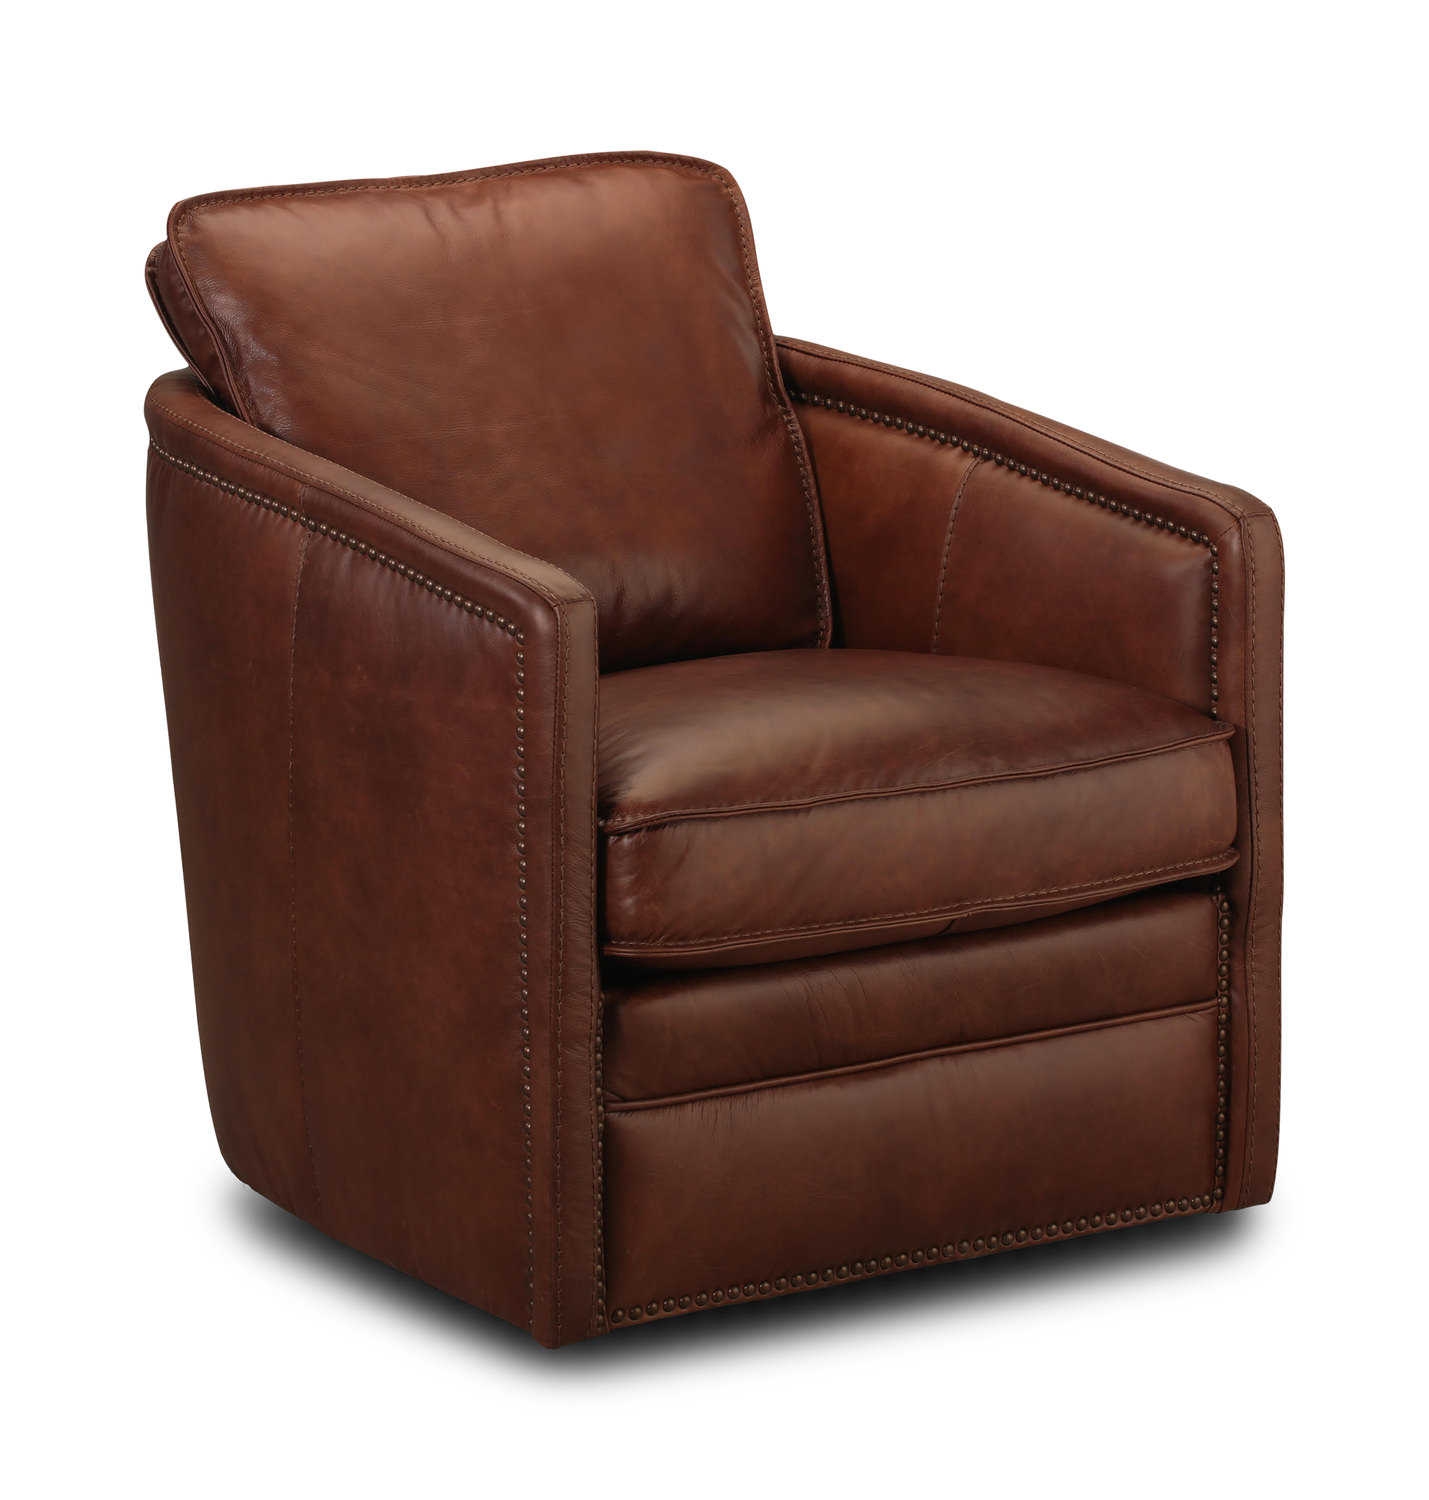 Pivot Leather Swivel Chairthomas Cole | Hom Furniture In Swivel Tobacco Leather Chairs (Image 12 of 20)